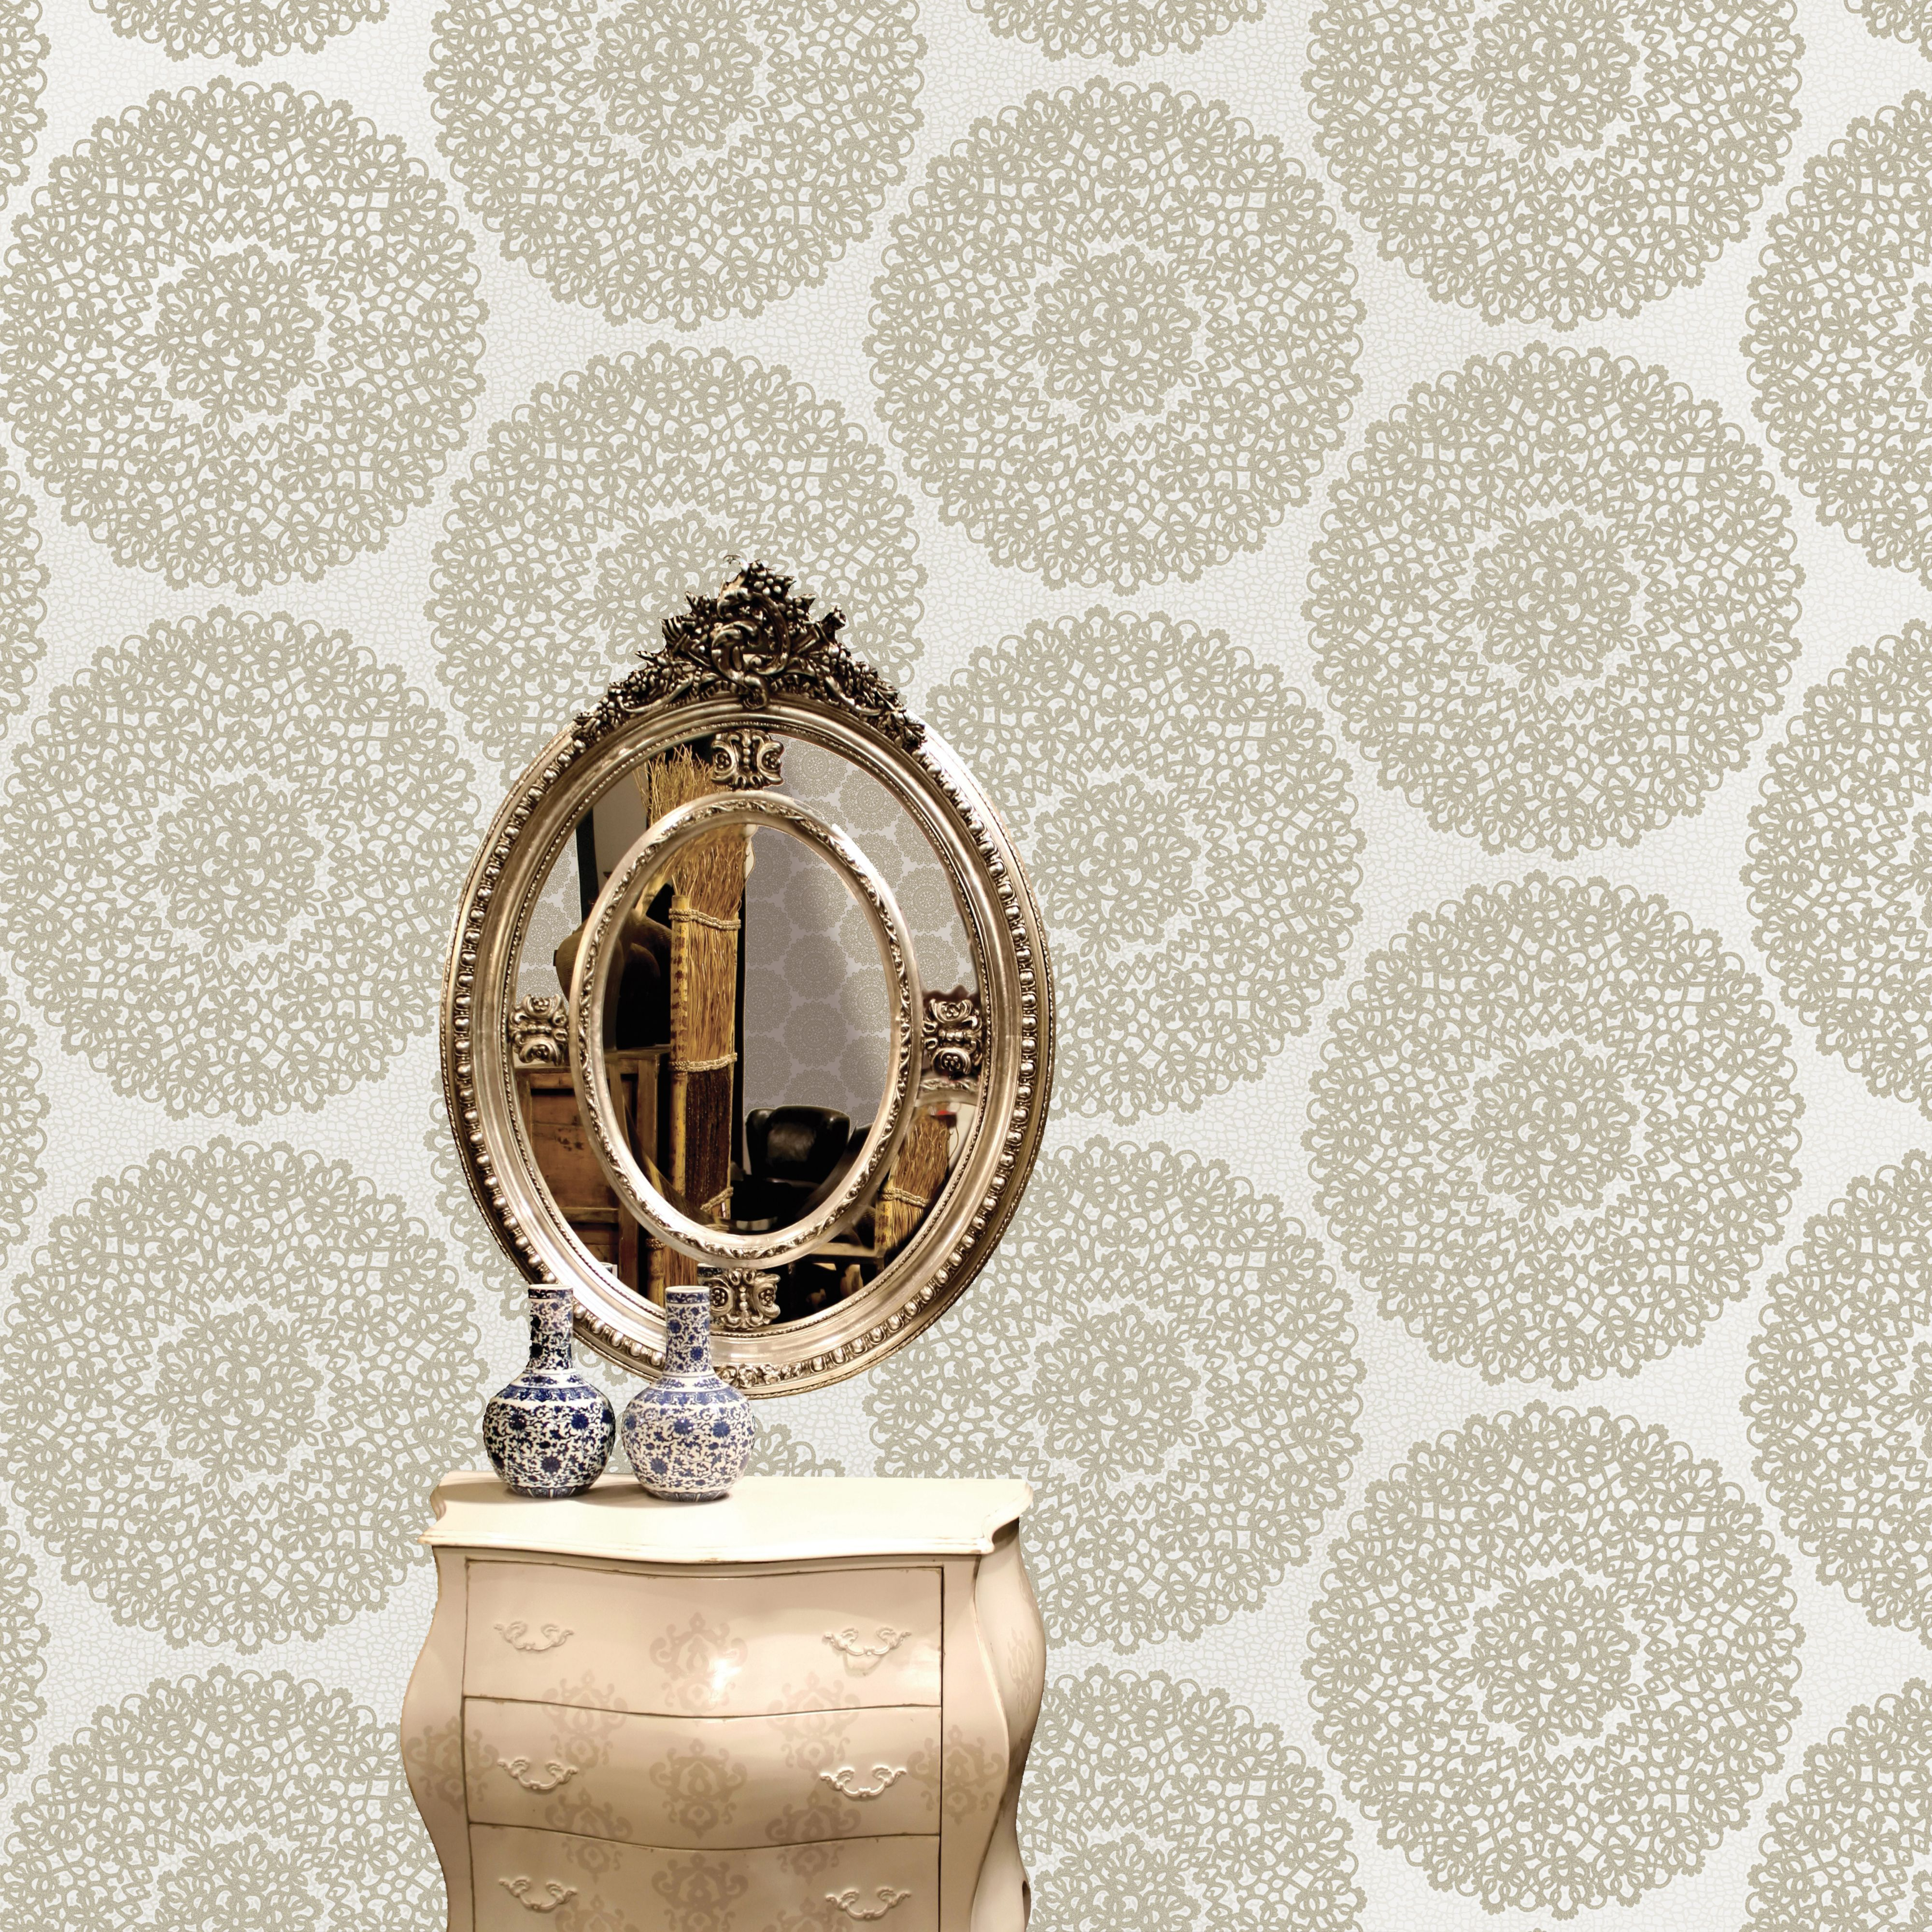 living room wallpaper bq upholstered chair statement beige taupe kenitra mica effect b q for all your home and garden supplies advice on the latest diy trends